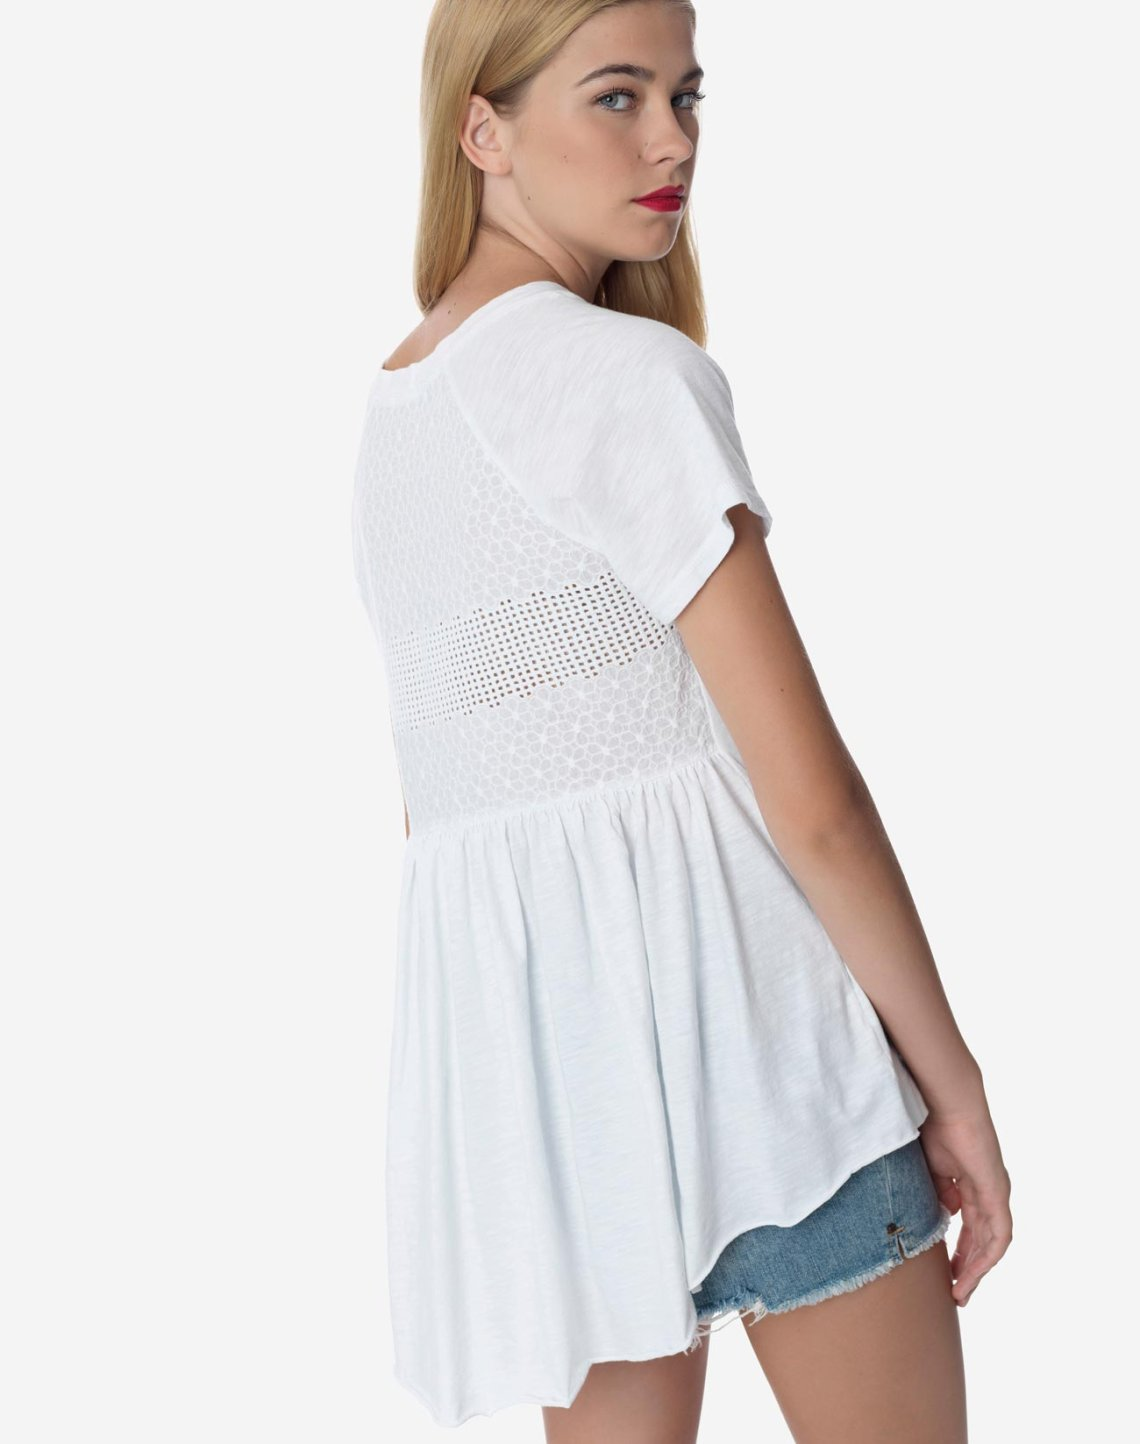 Asymmetric top with cutwork detail